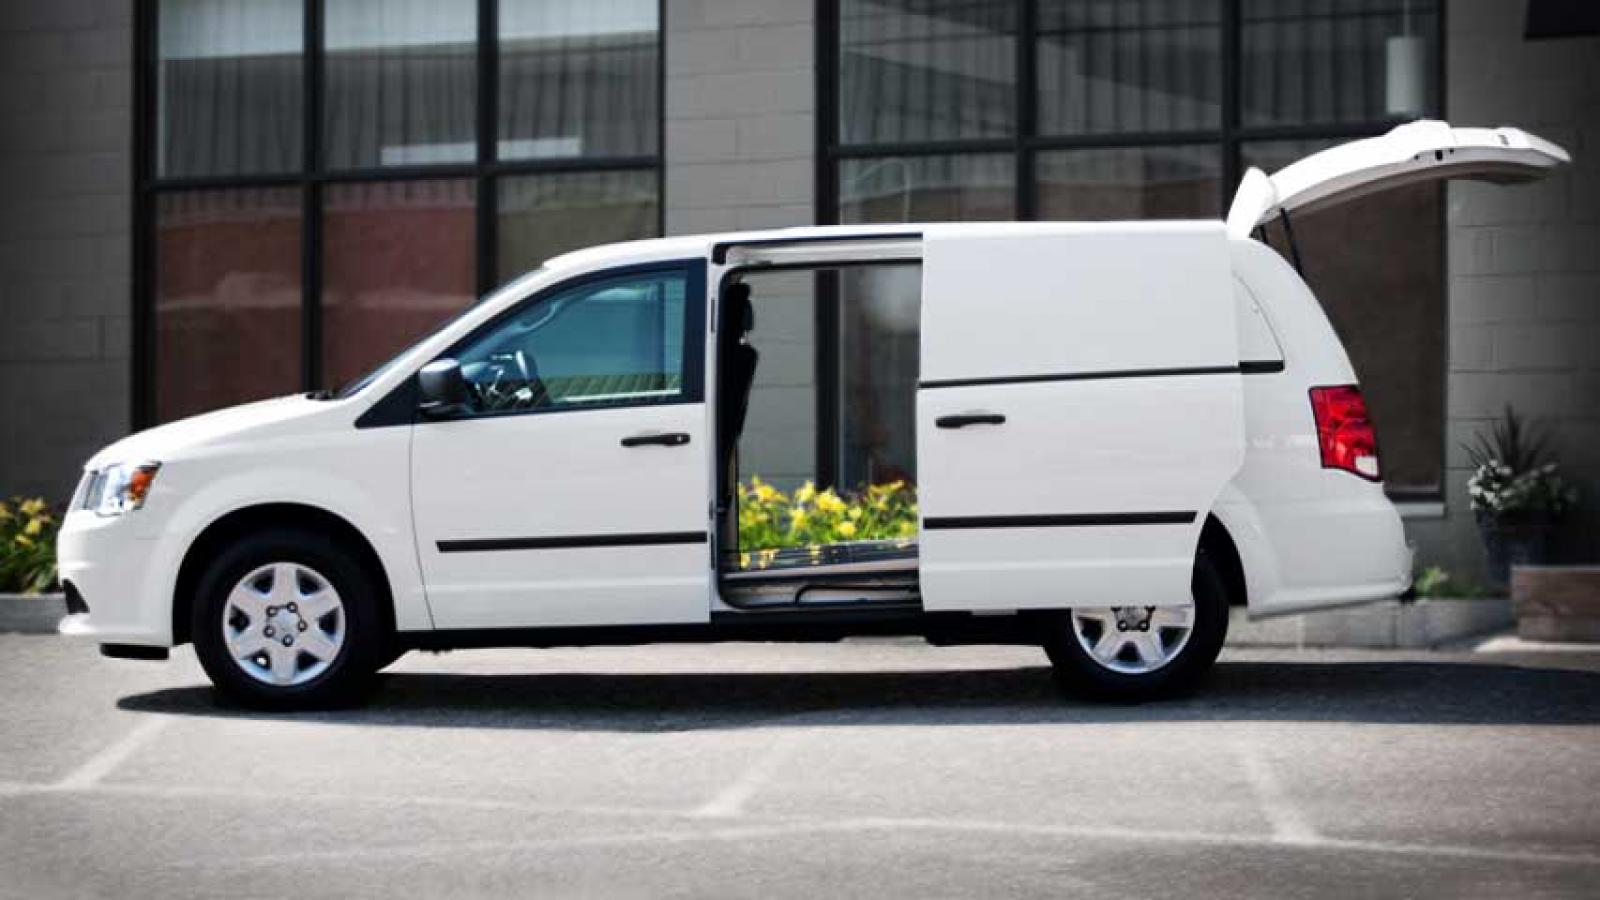 2014 Ram Cv Tradesman Information And Photos Zombiedrive Dodge Van 800 1024 1280 1600 Origin